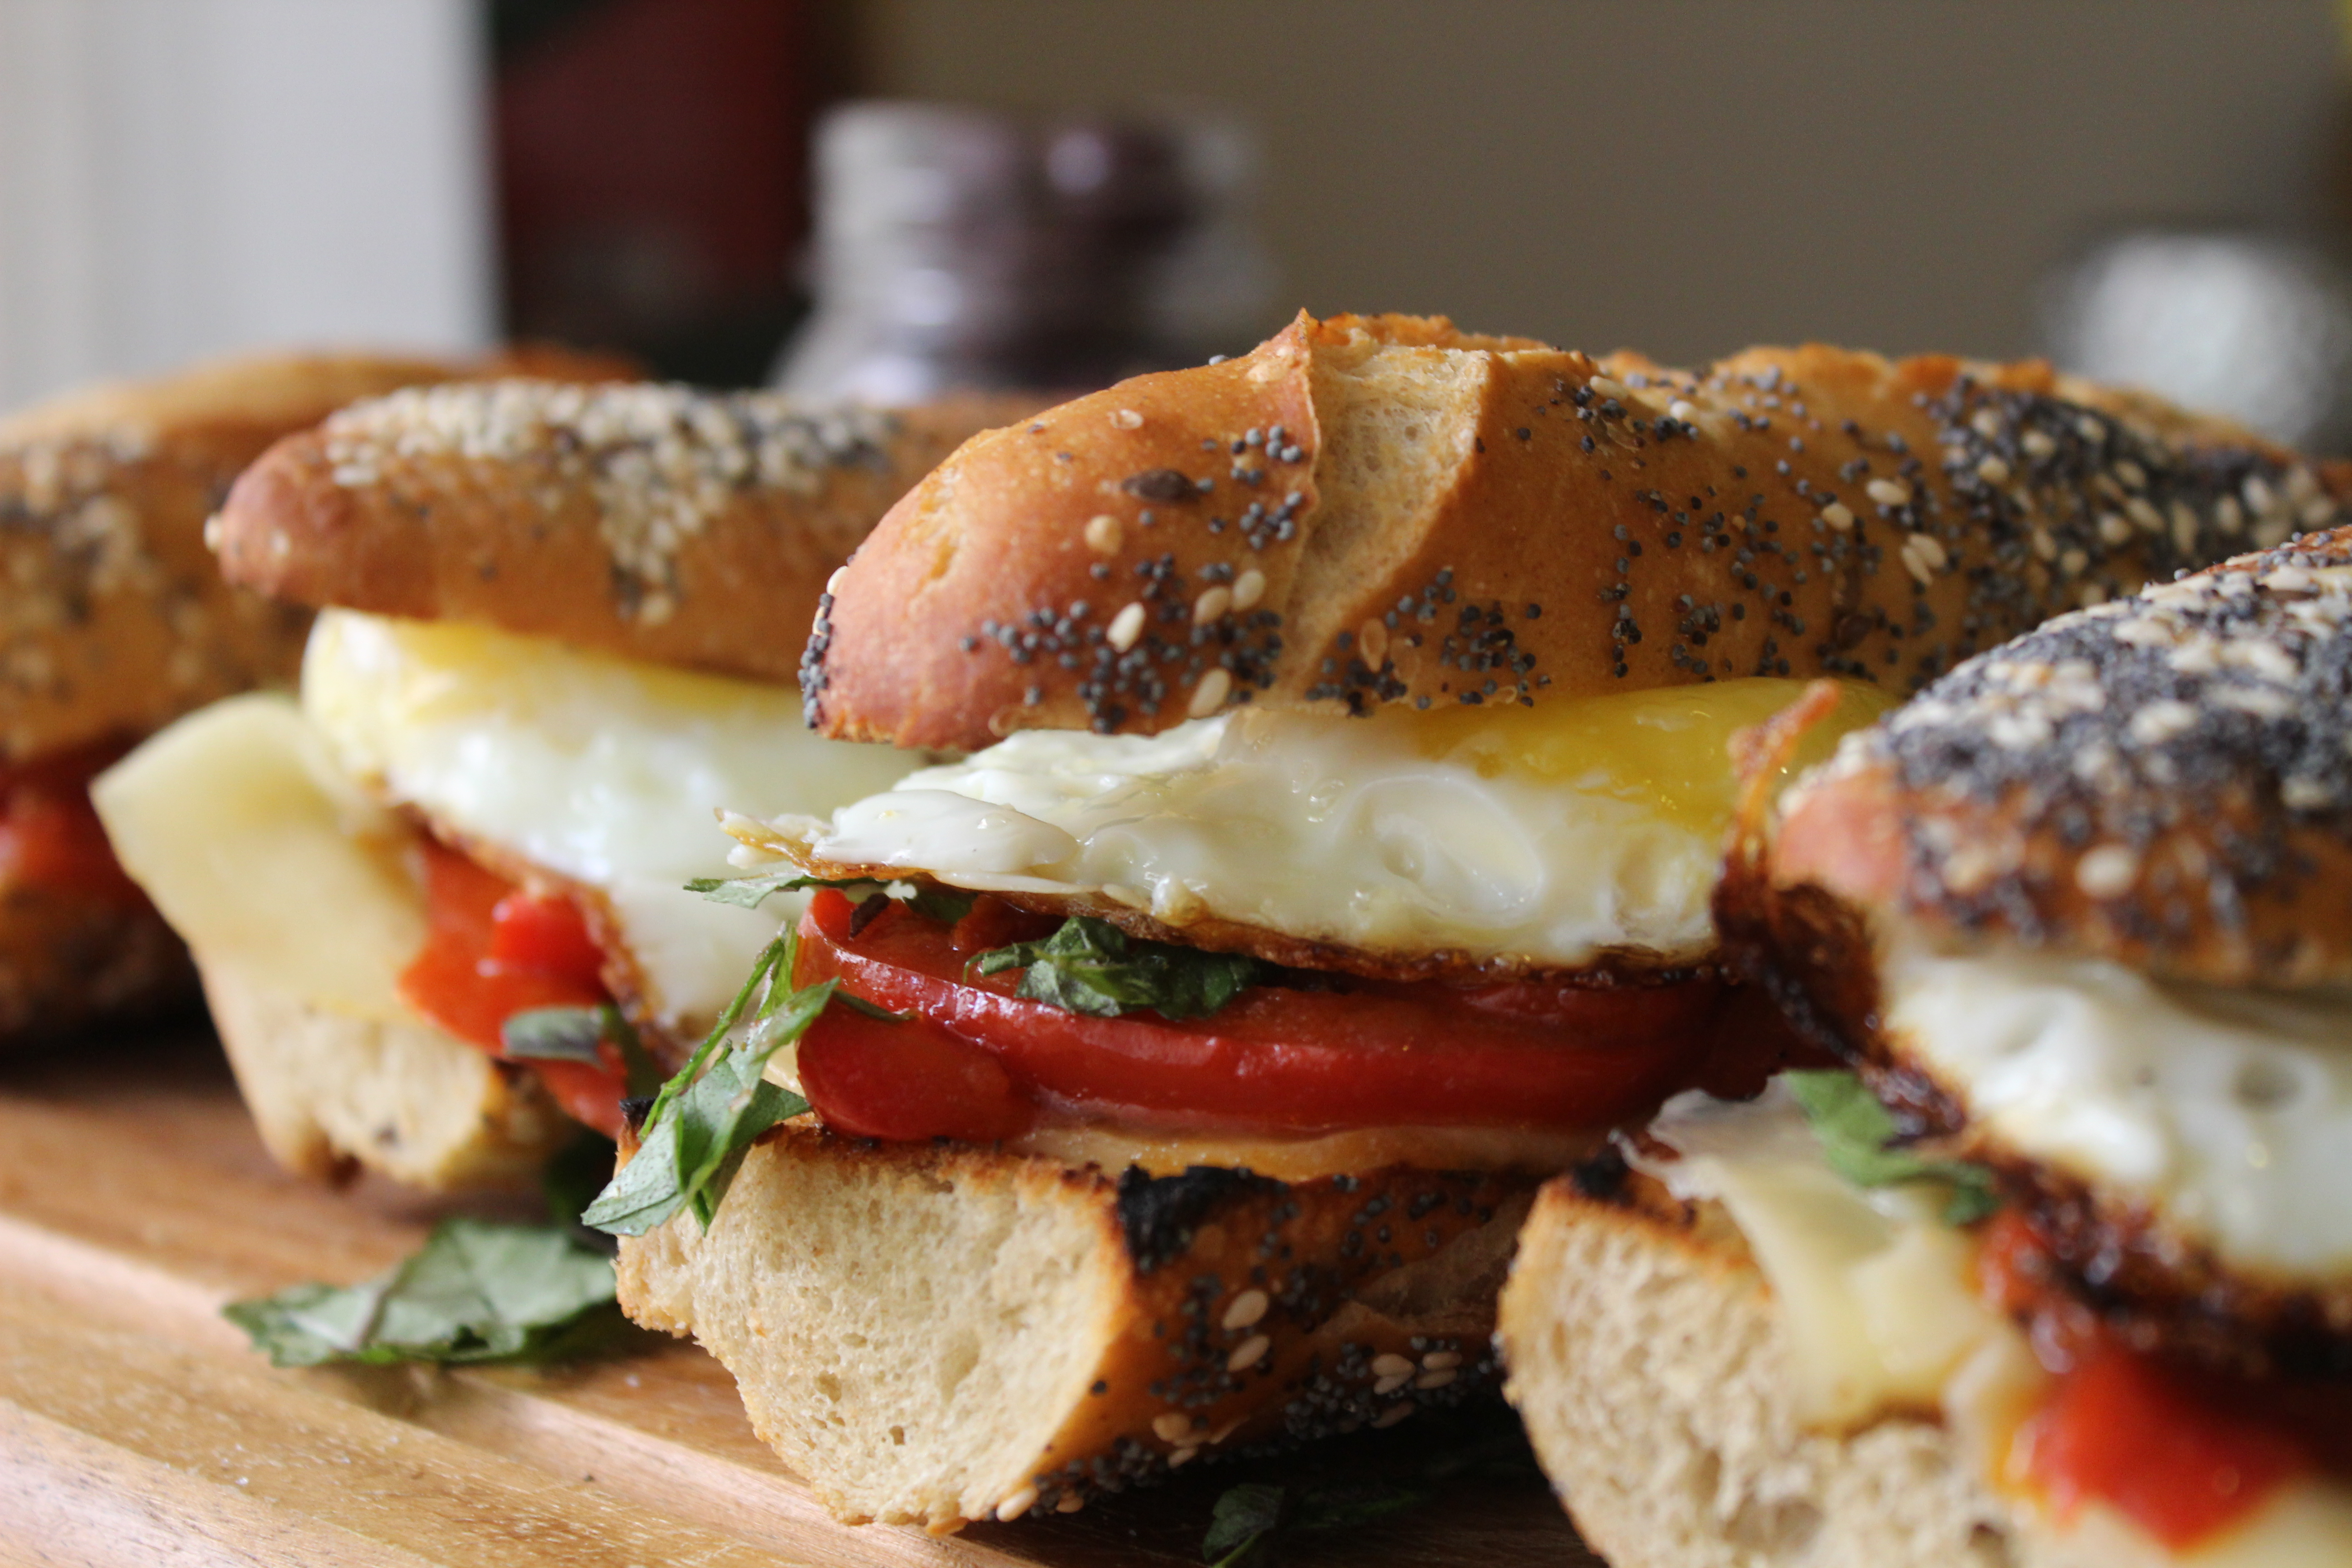 Sunny sandwiches and pea shoot salad - Chef Zissie Recipes